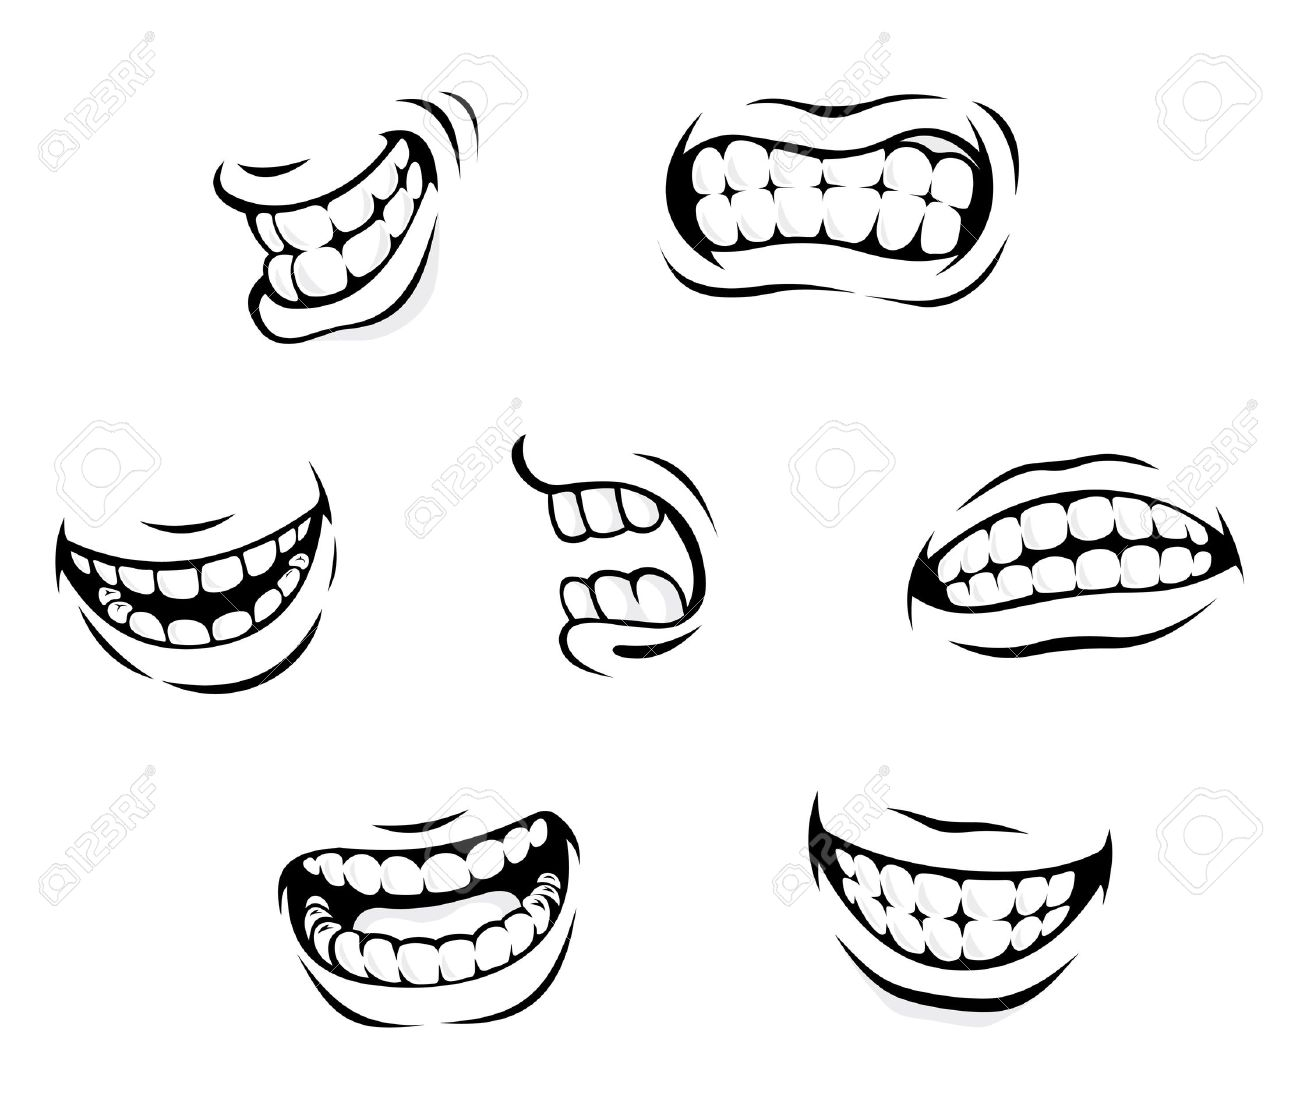 Grin clipart #8, Download drawings